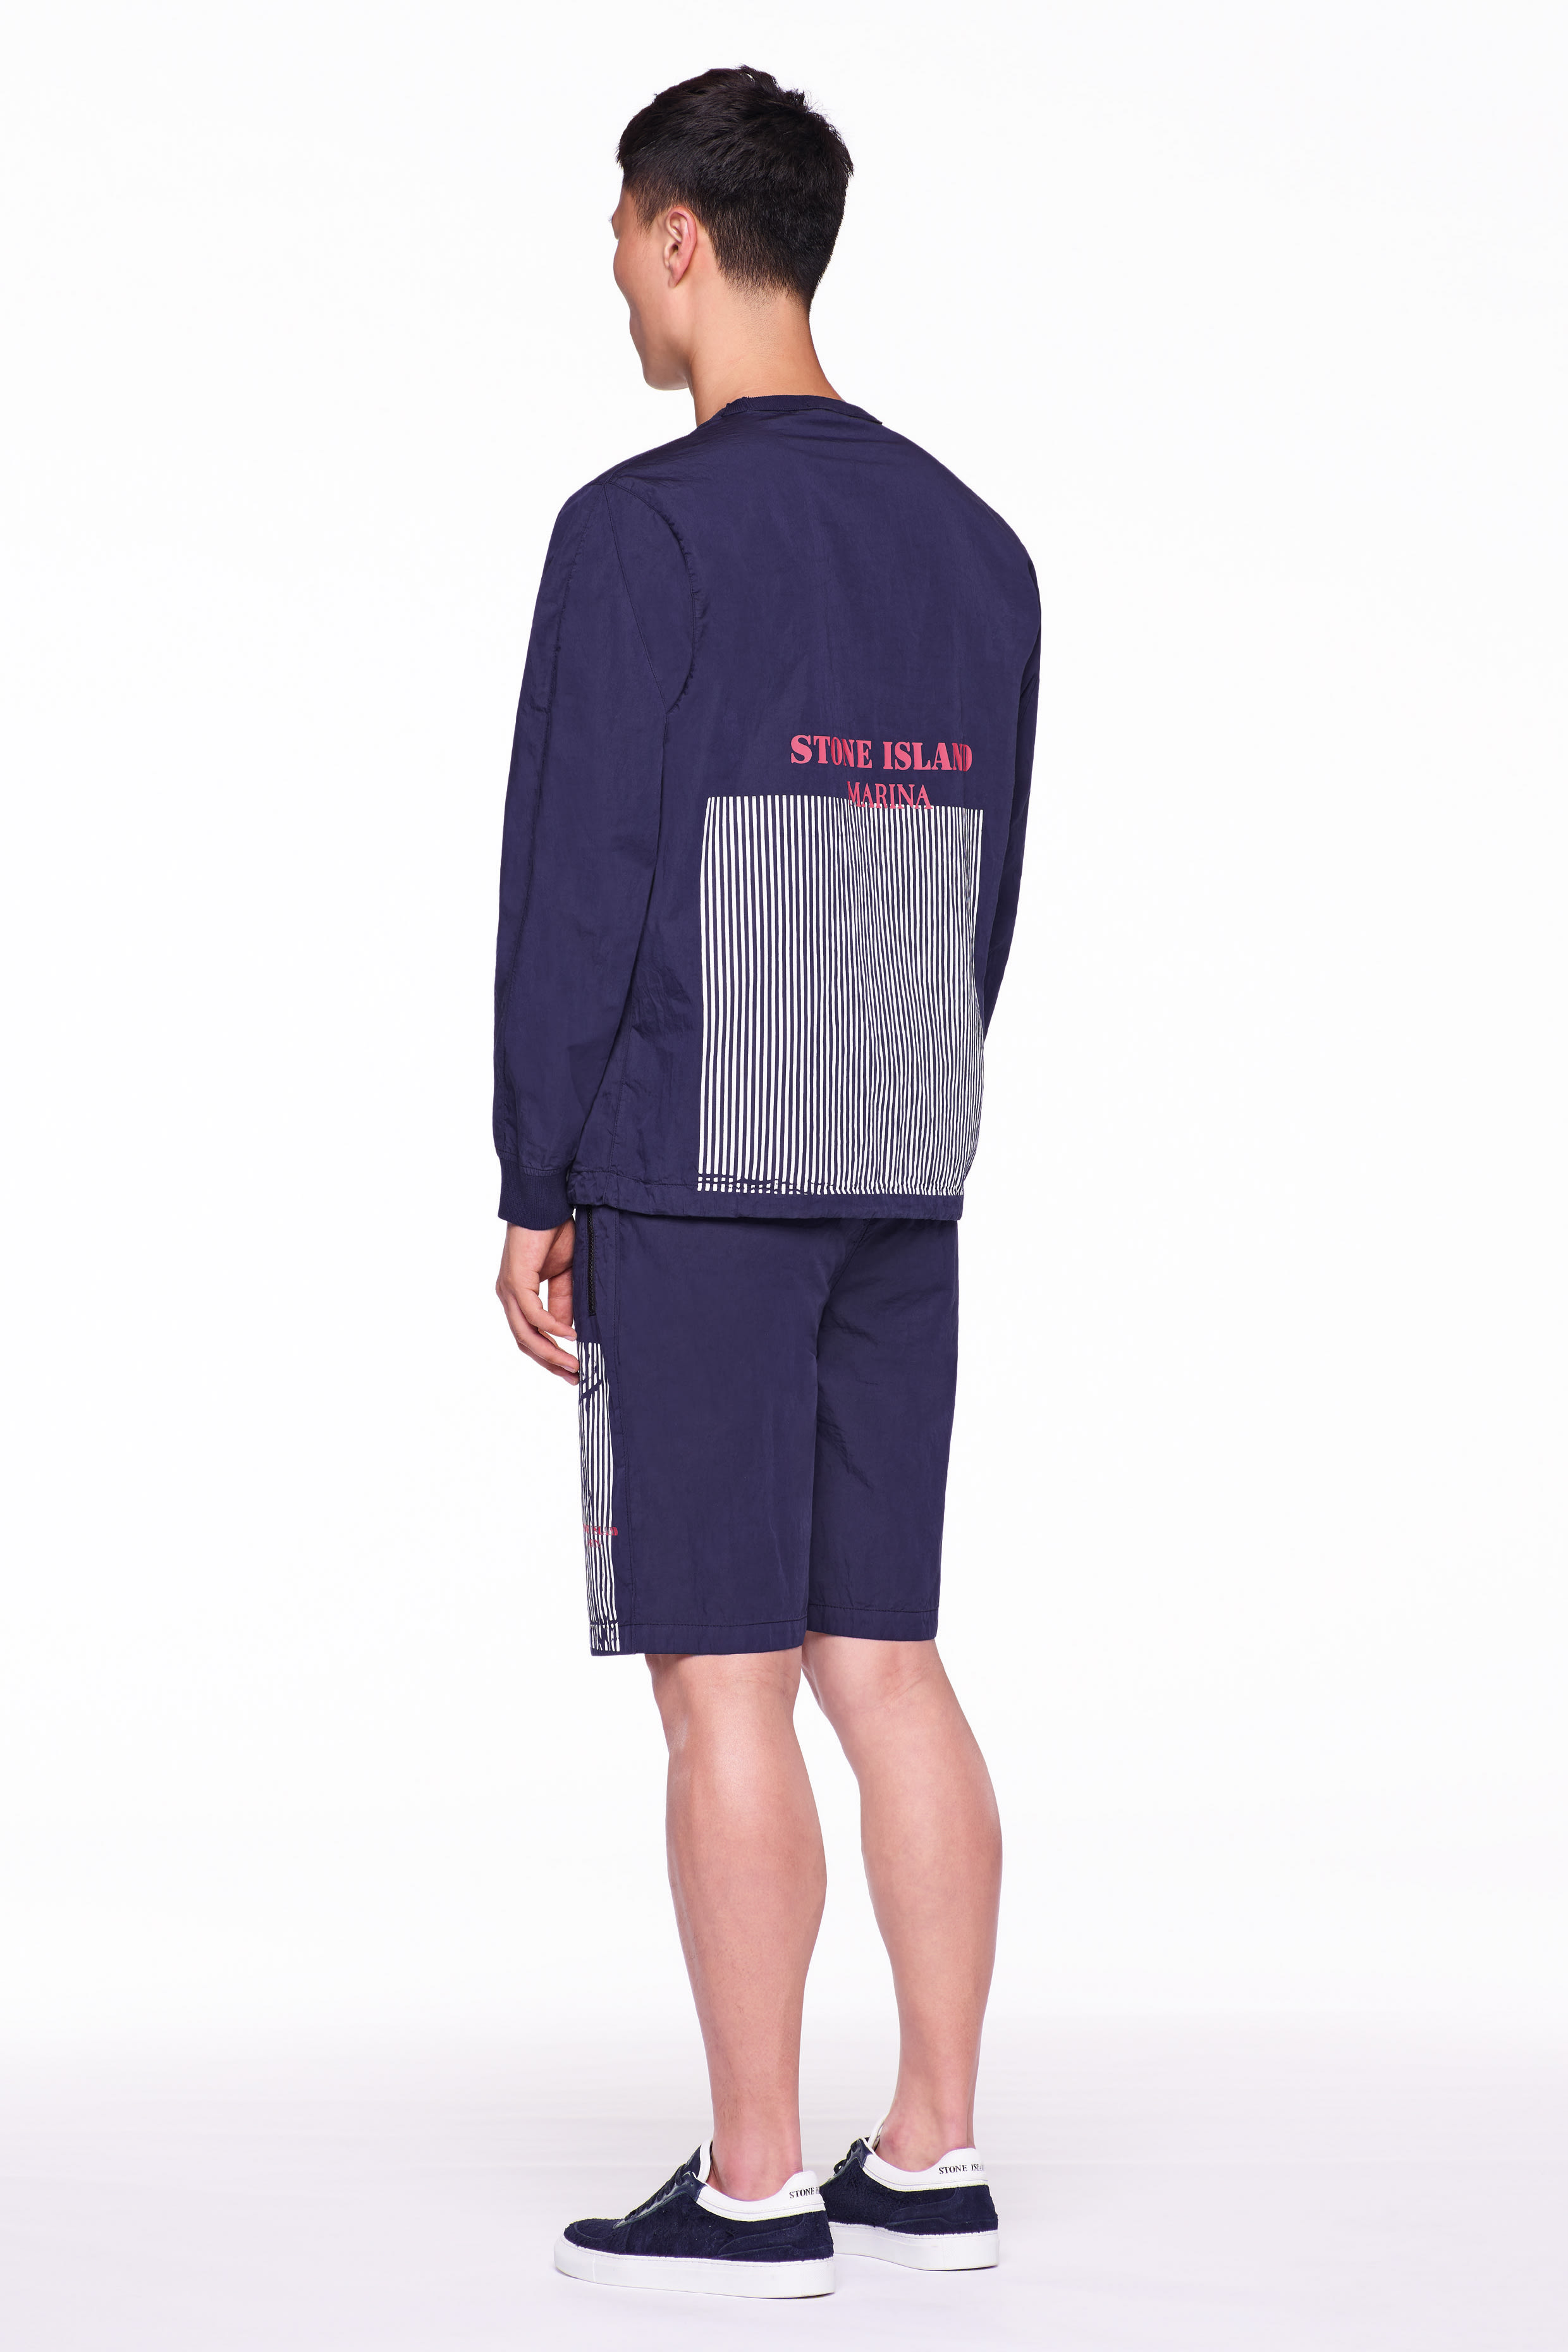 ss18-si14